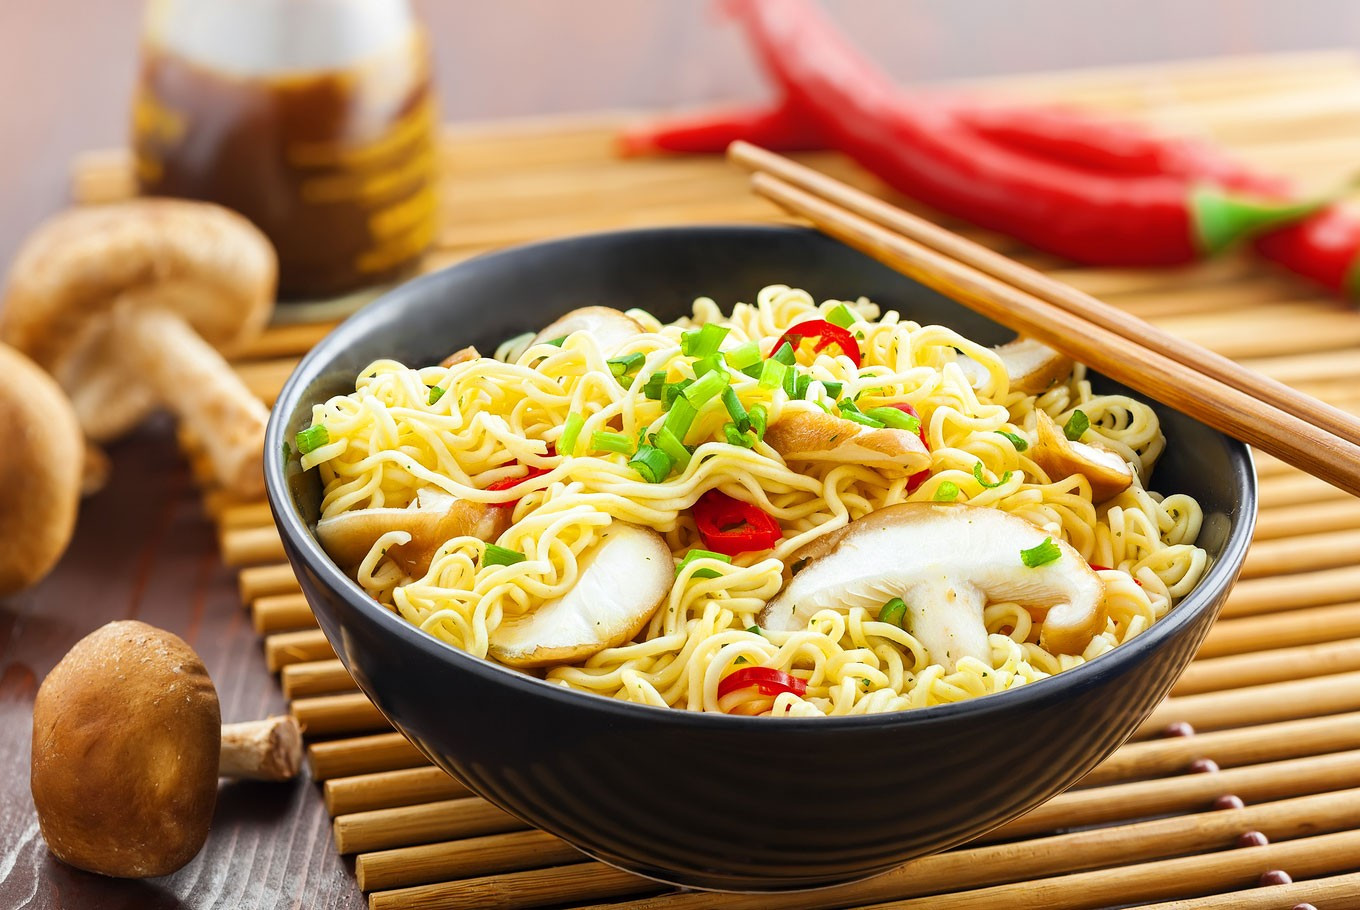 Are Noodles Healthy  Rice vs noodles Which is healthier Health The